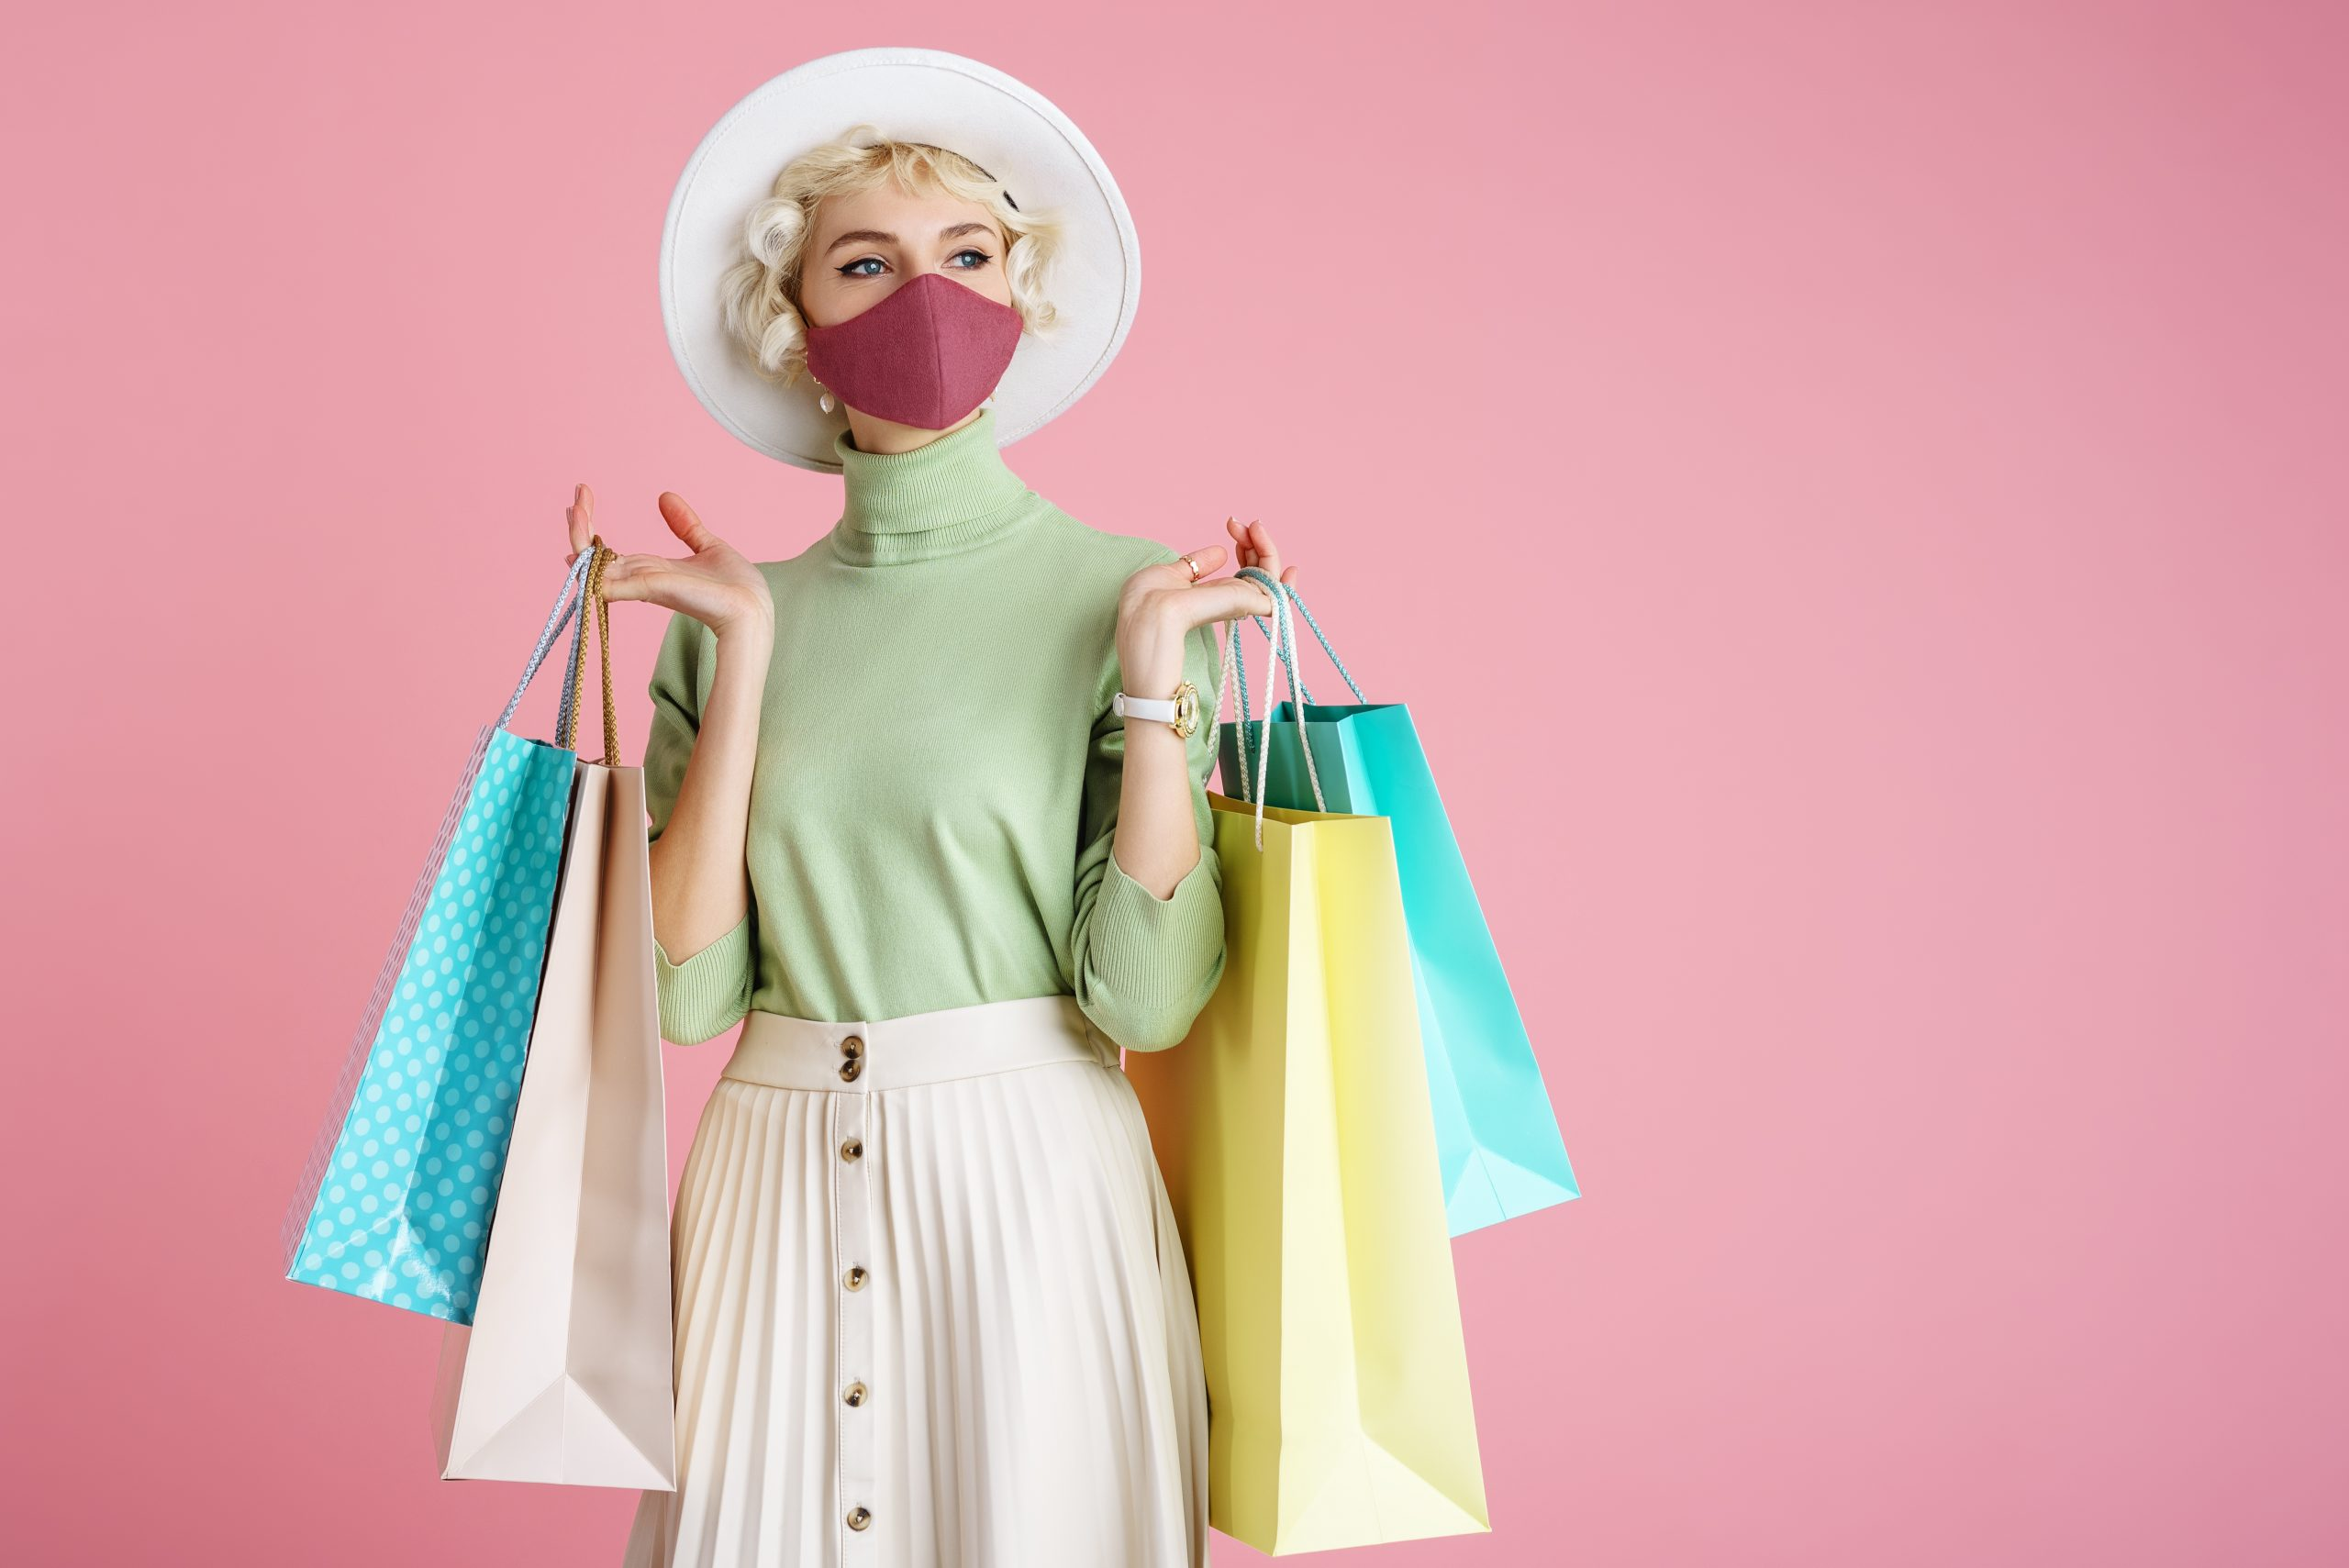 Mandatory Masks – Shoppers Must Comply or Face FPN